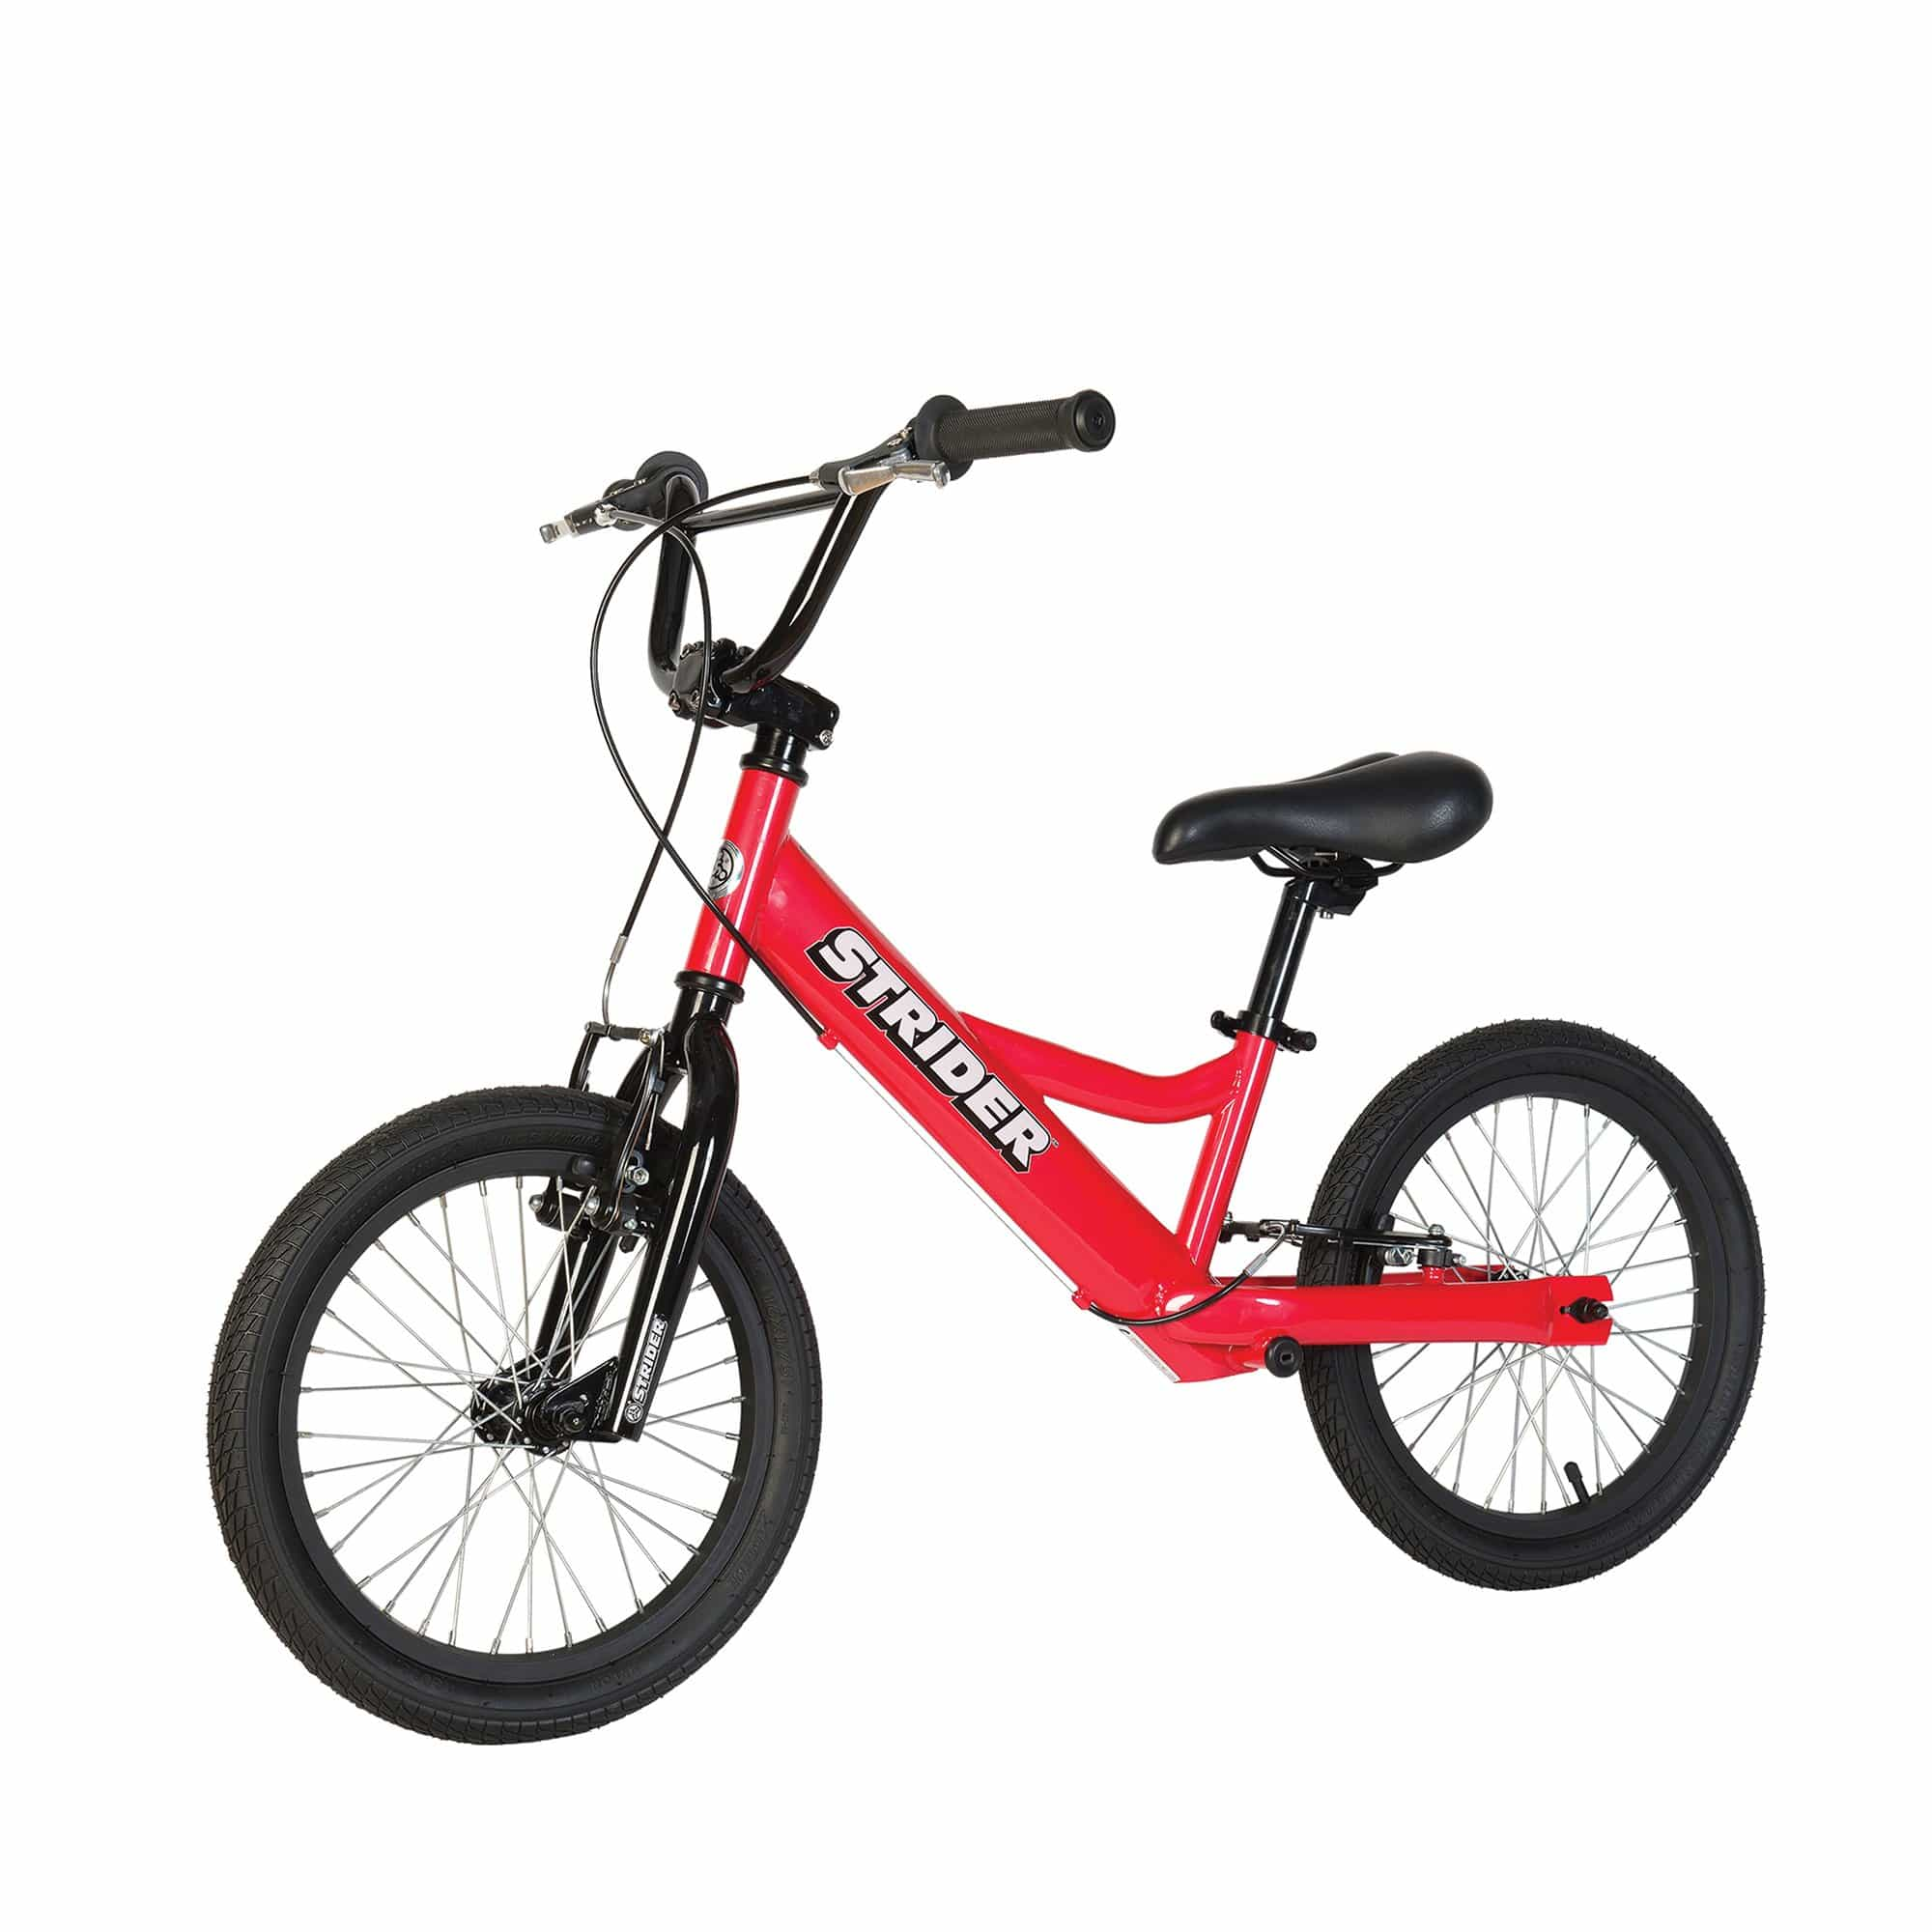 Strider 16 Sport Balance Bike - Red